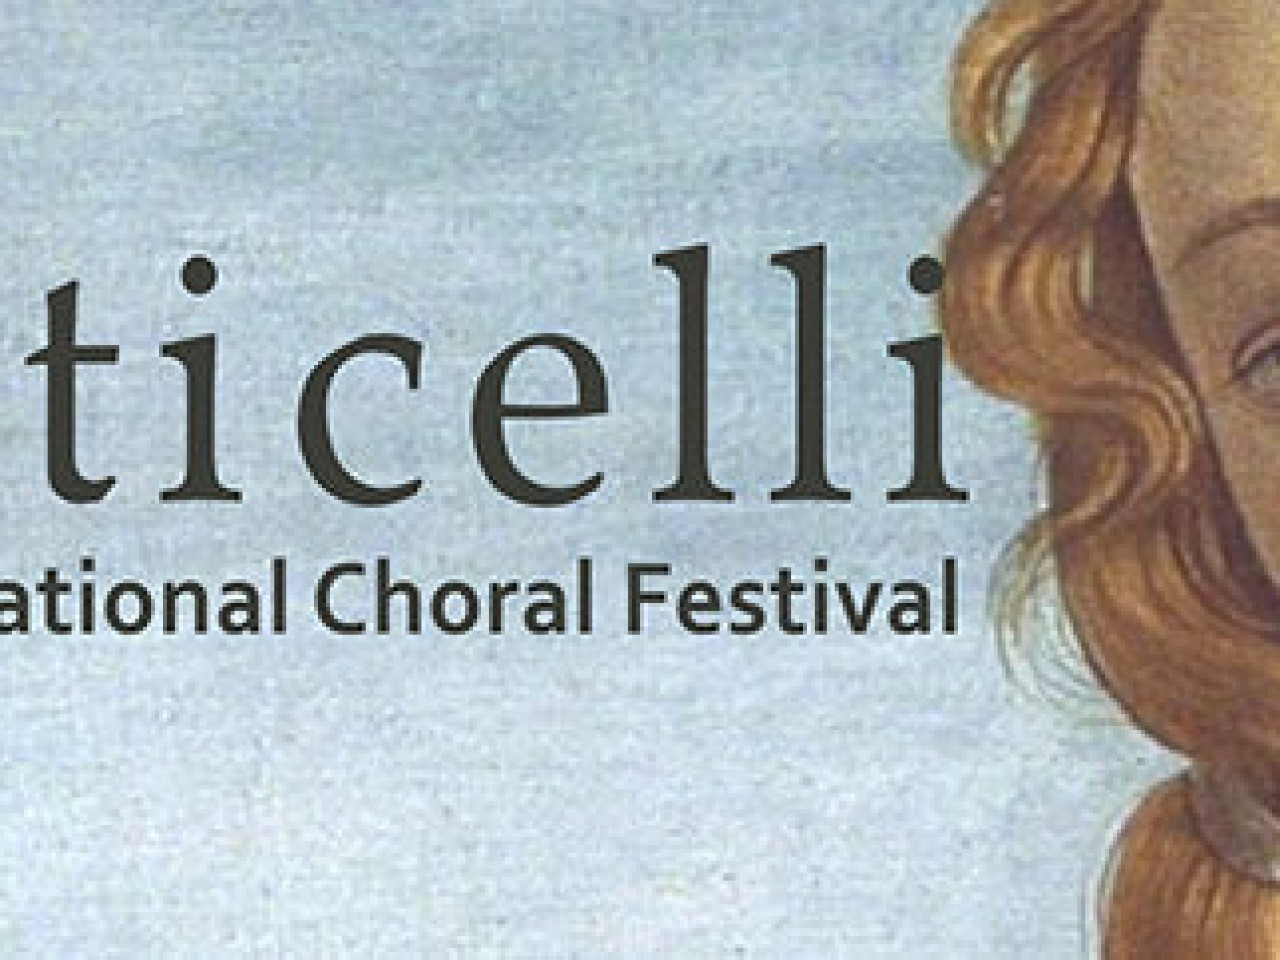 Botticelli International Choral Festival, Florence